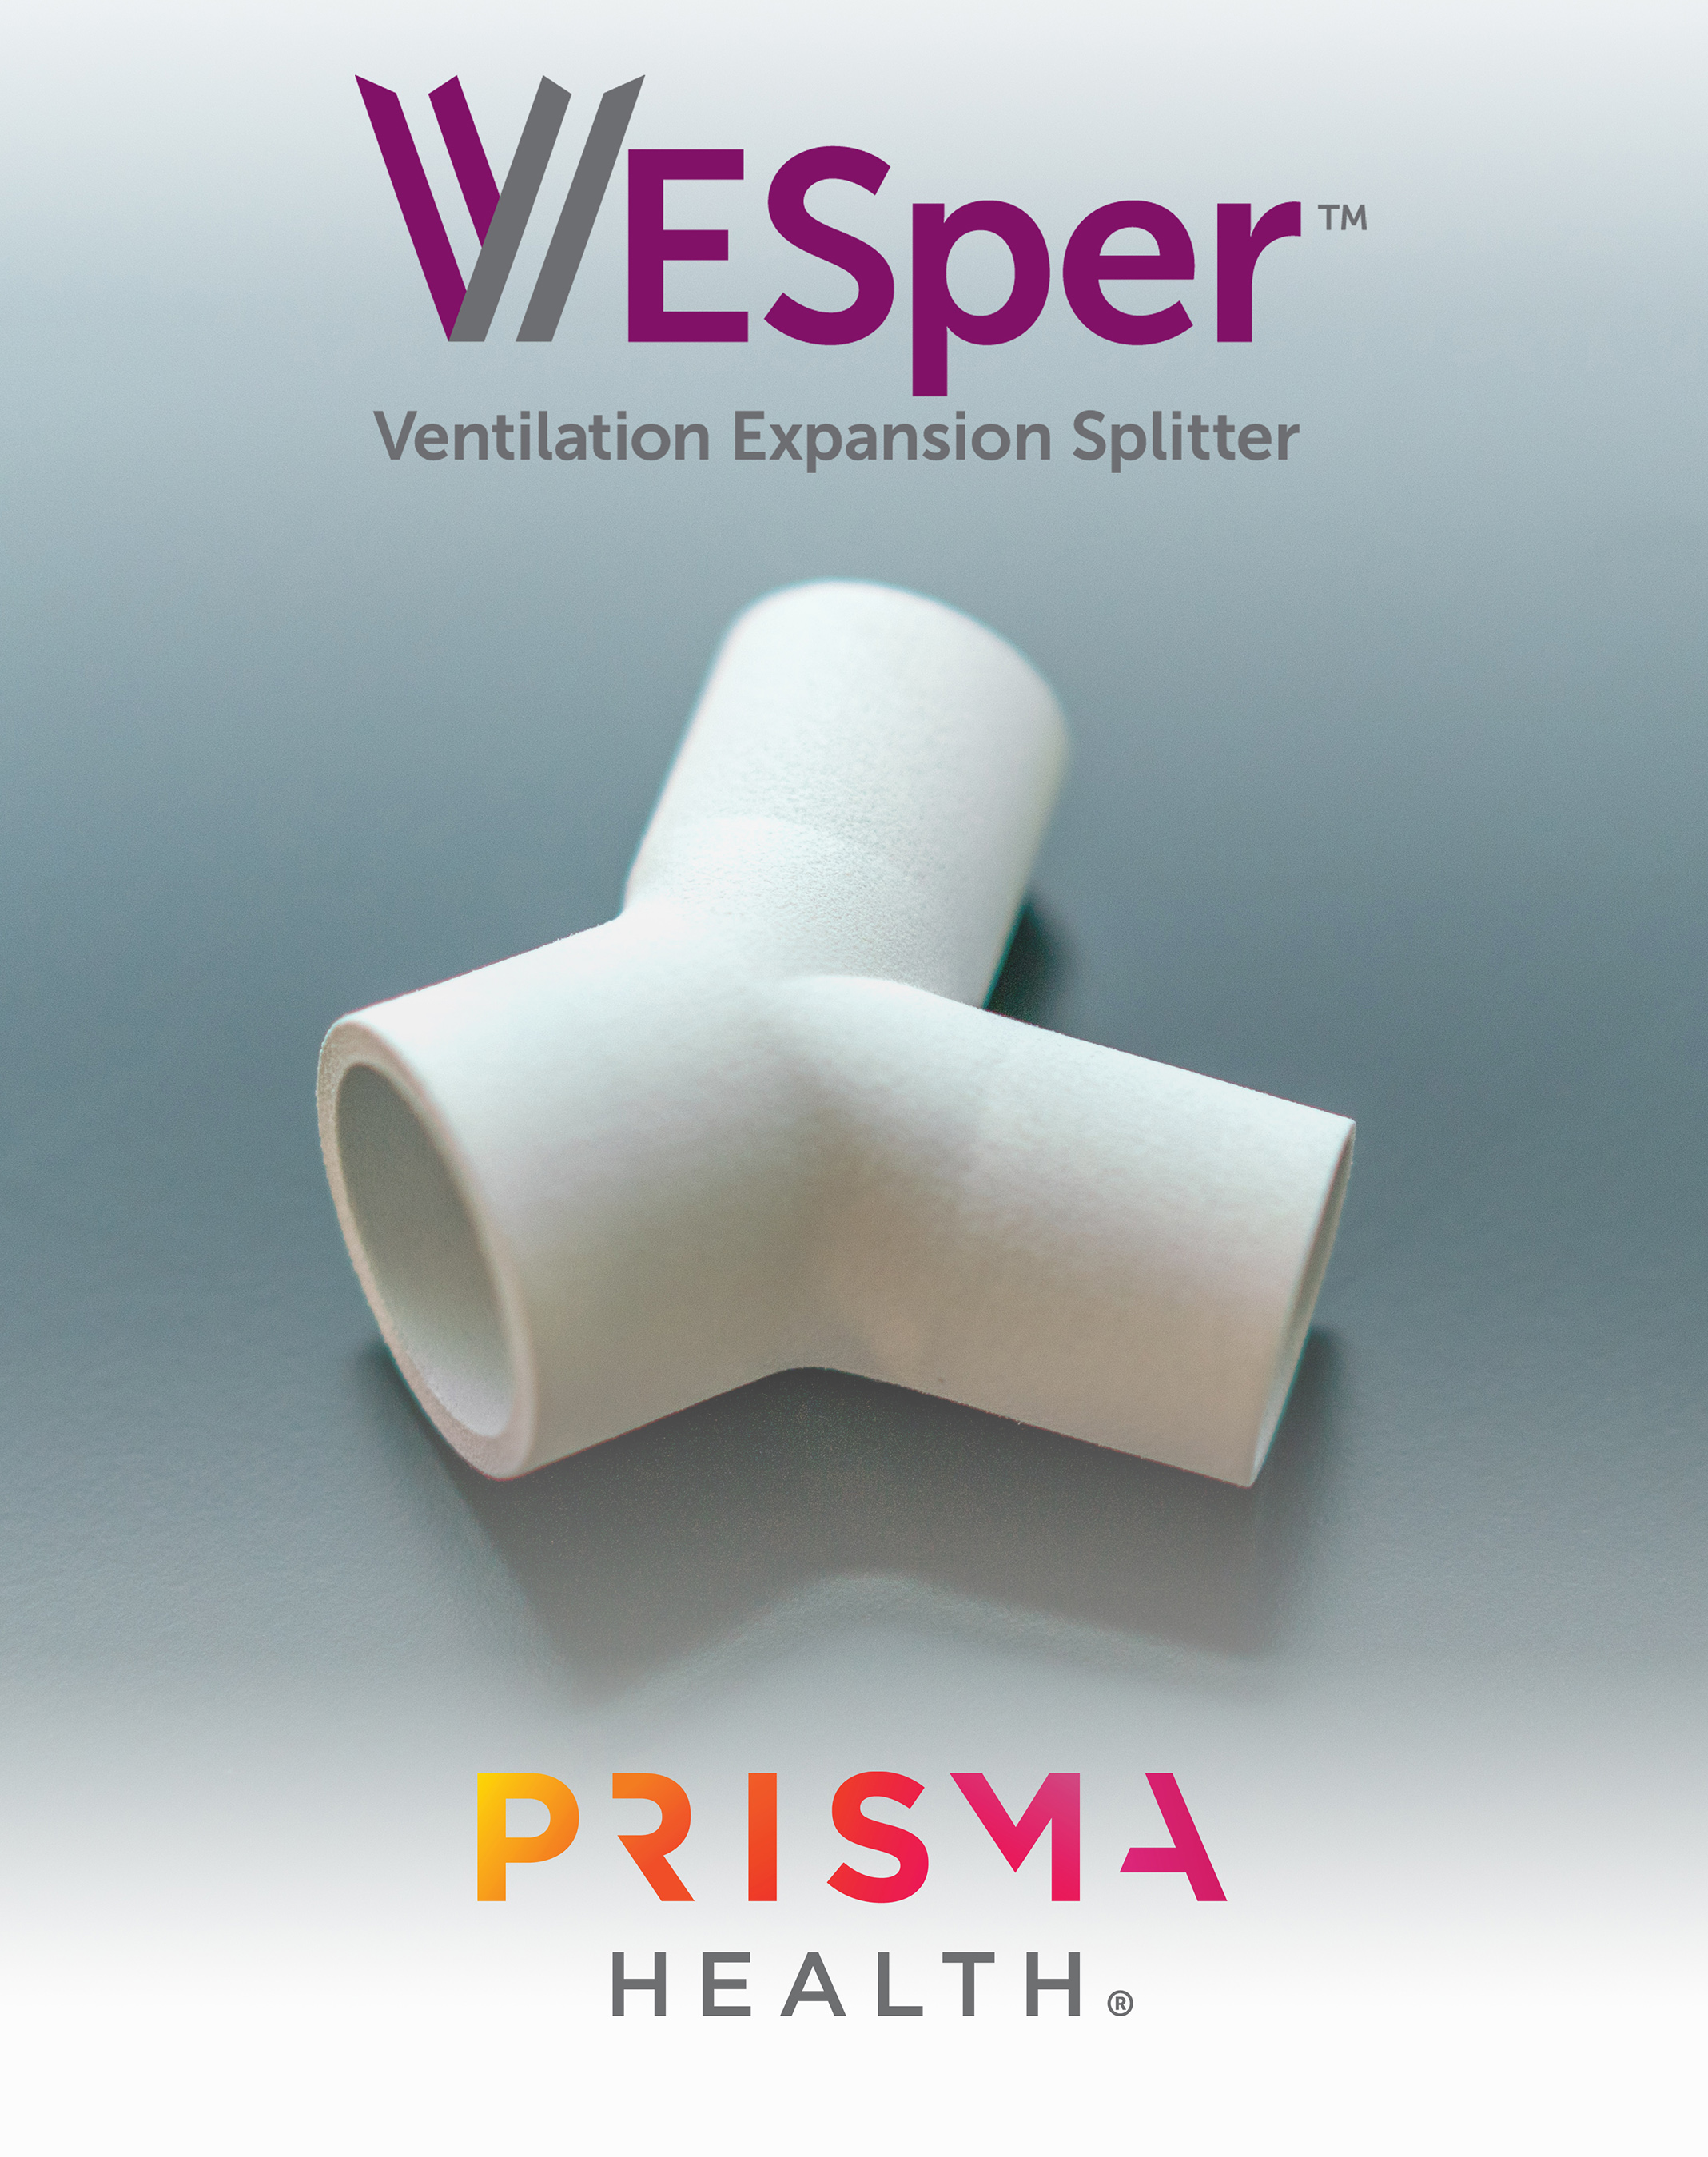 VESper logo and Prisma Health logo with VESper Ventilation Expansion Splitter product